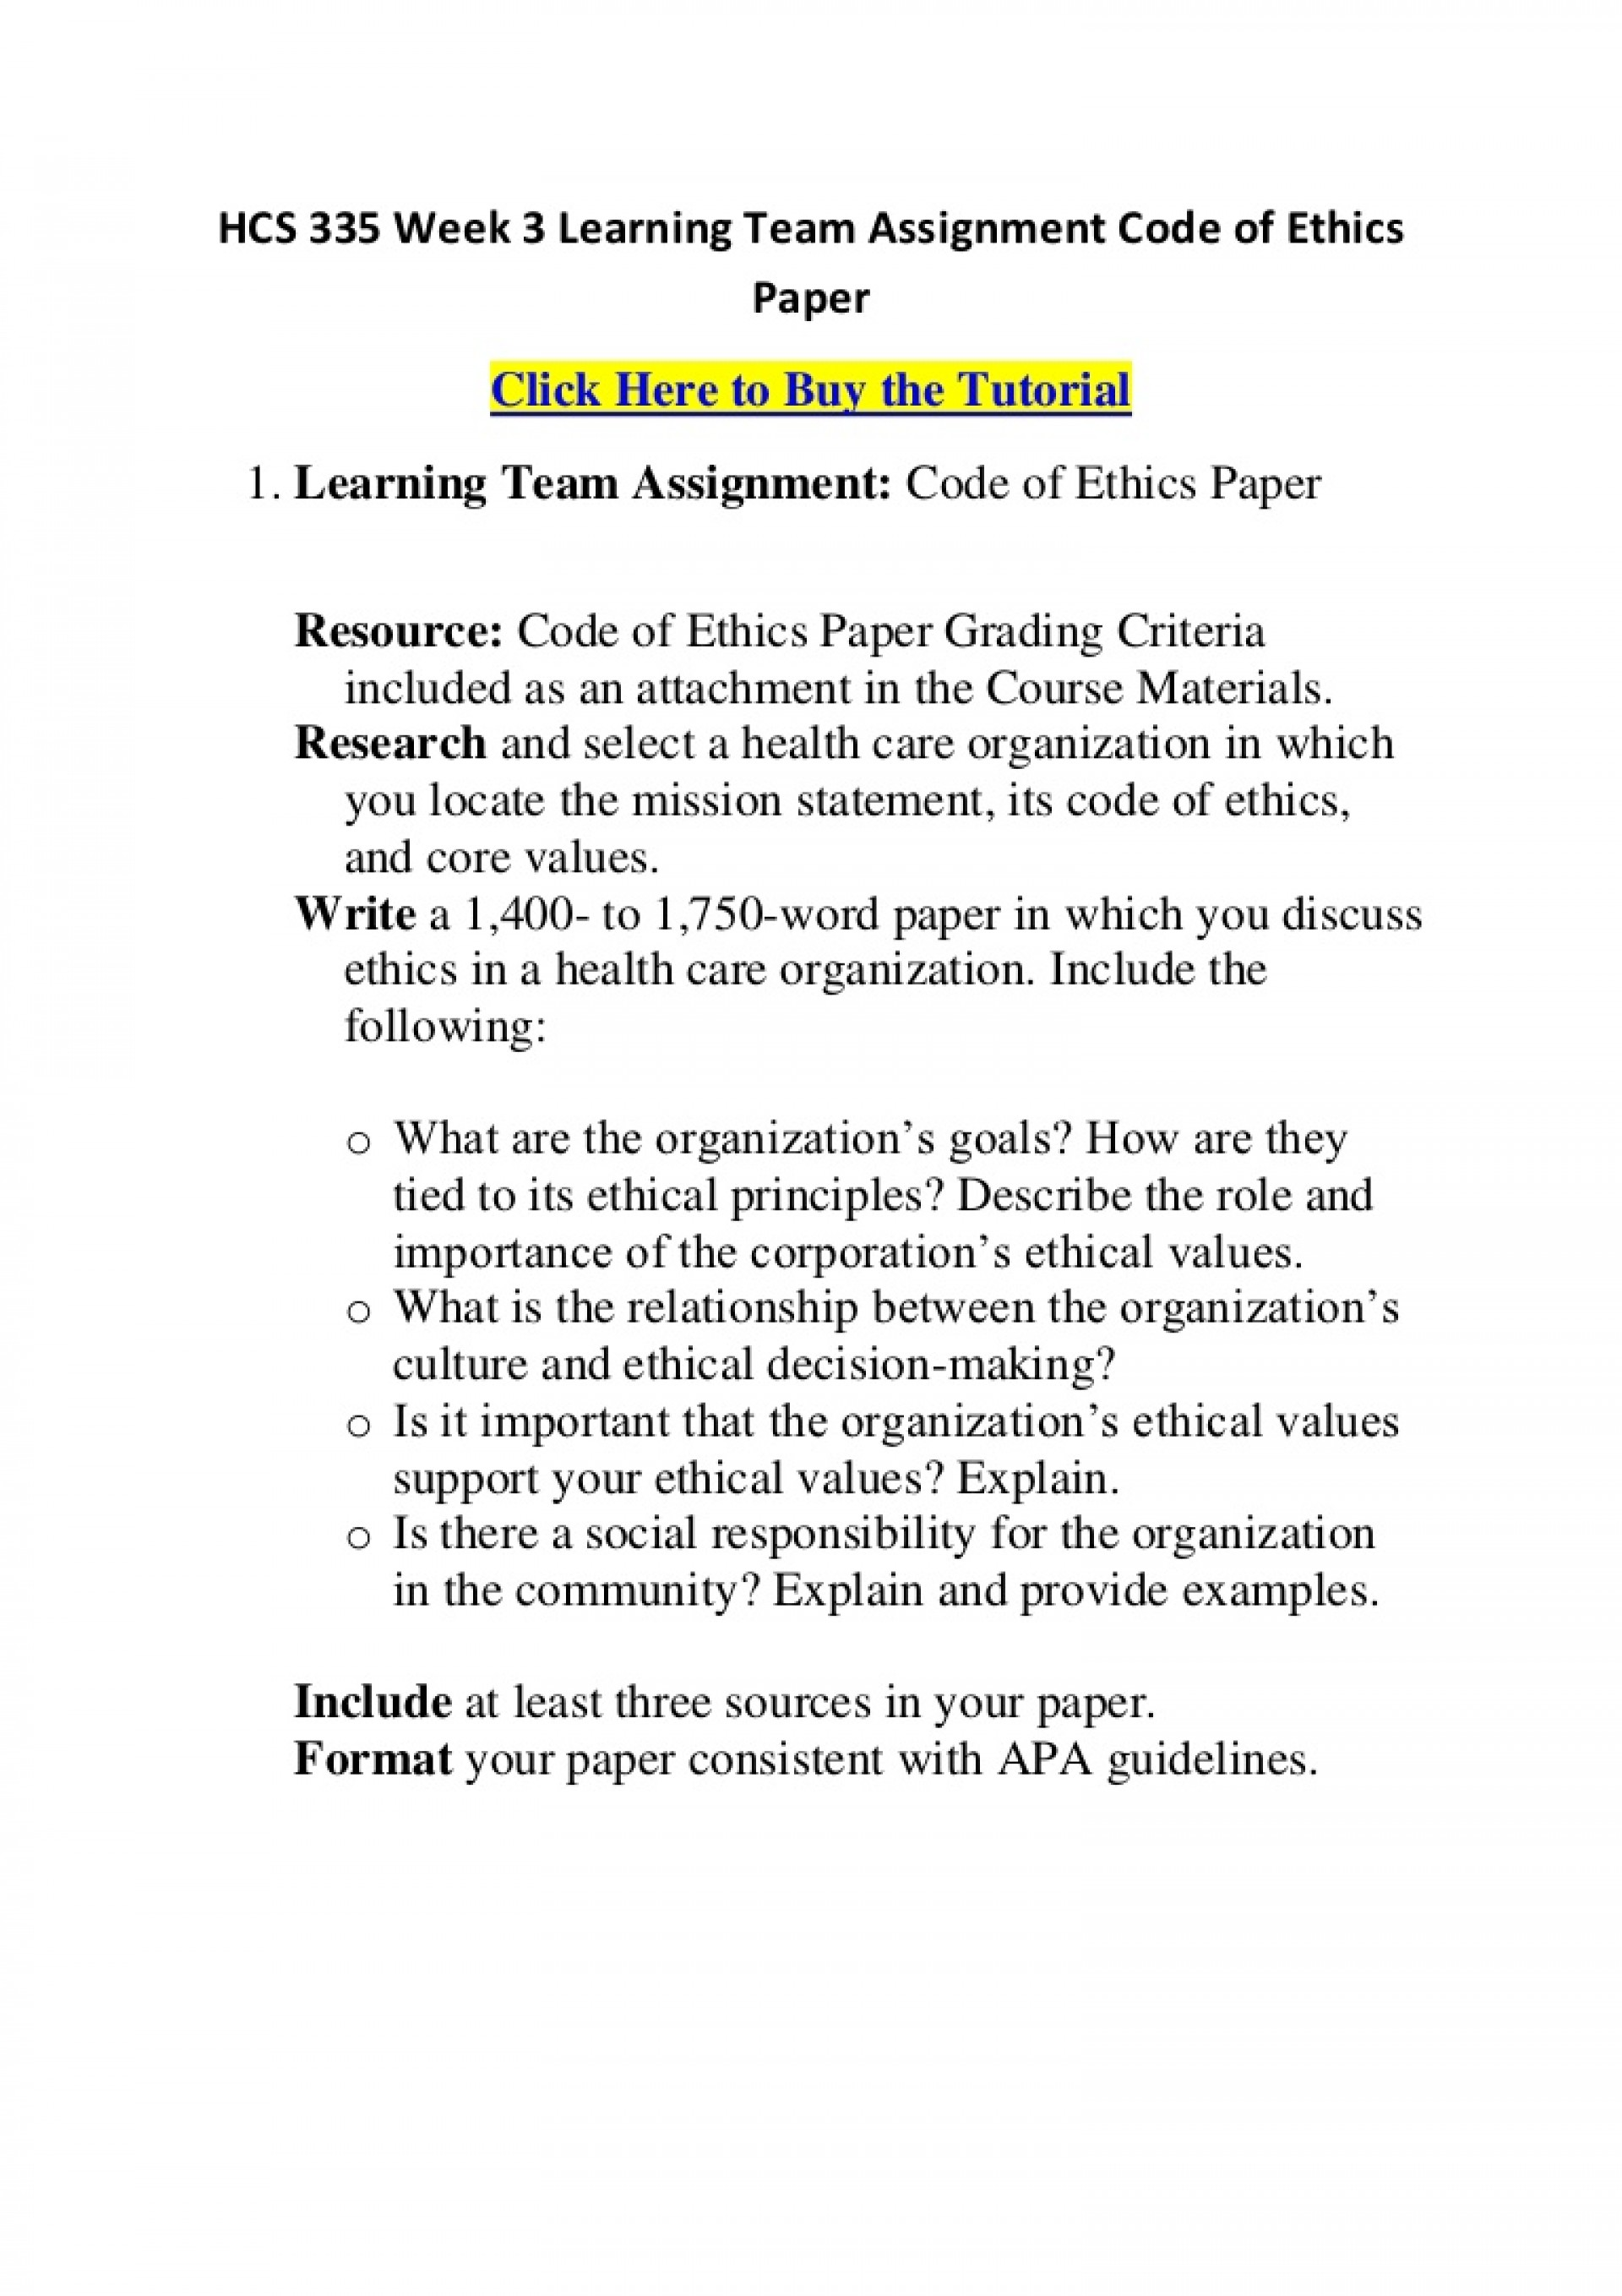 004 Hcs335week3learningteamassignmentcodeofethicspaper Phpapp01 Thumbnail Code Of Ethics Paper Essays Essay Surprising 1920